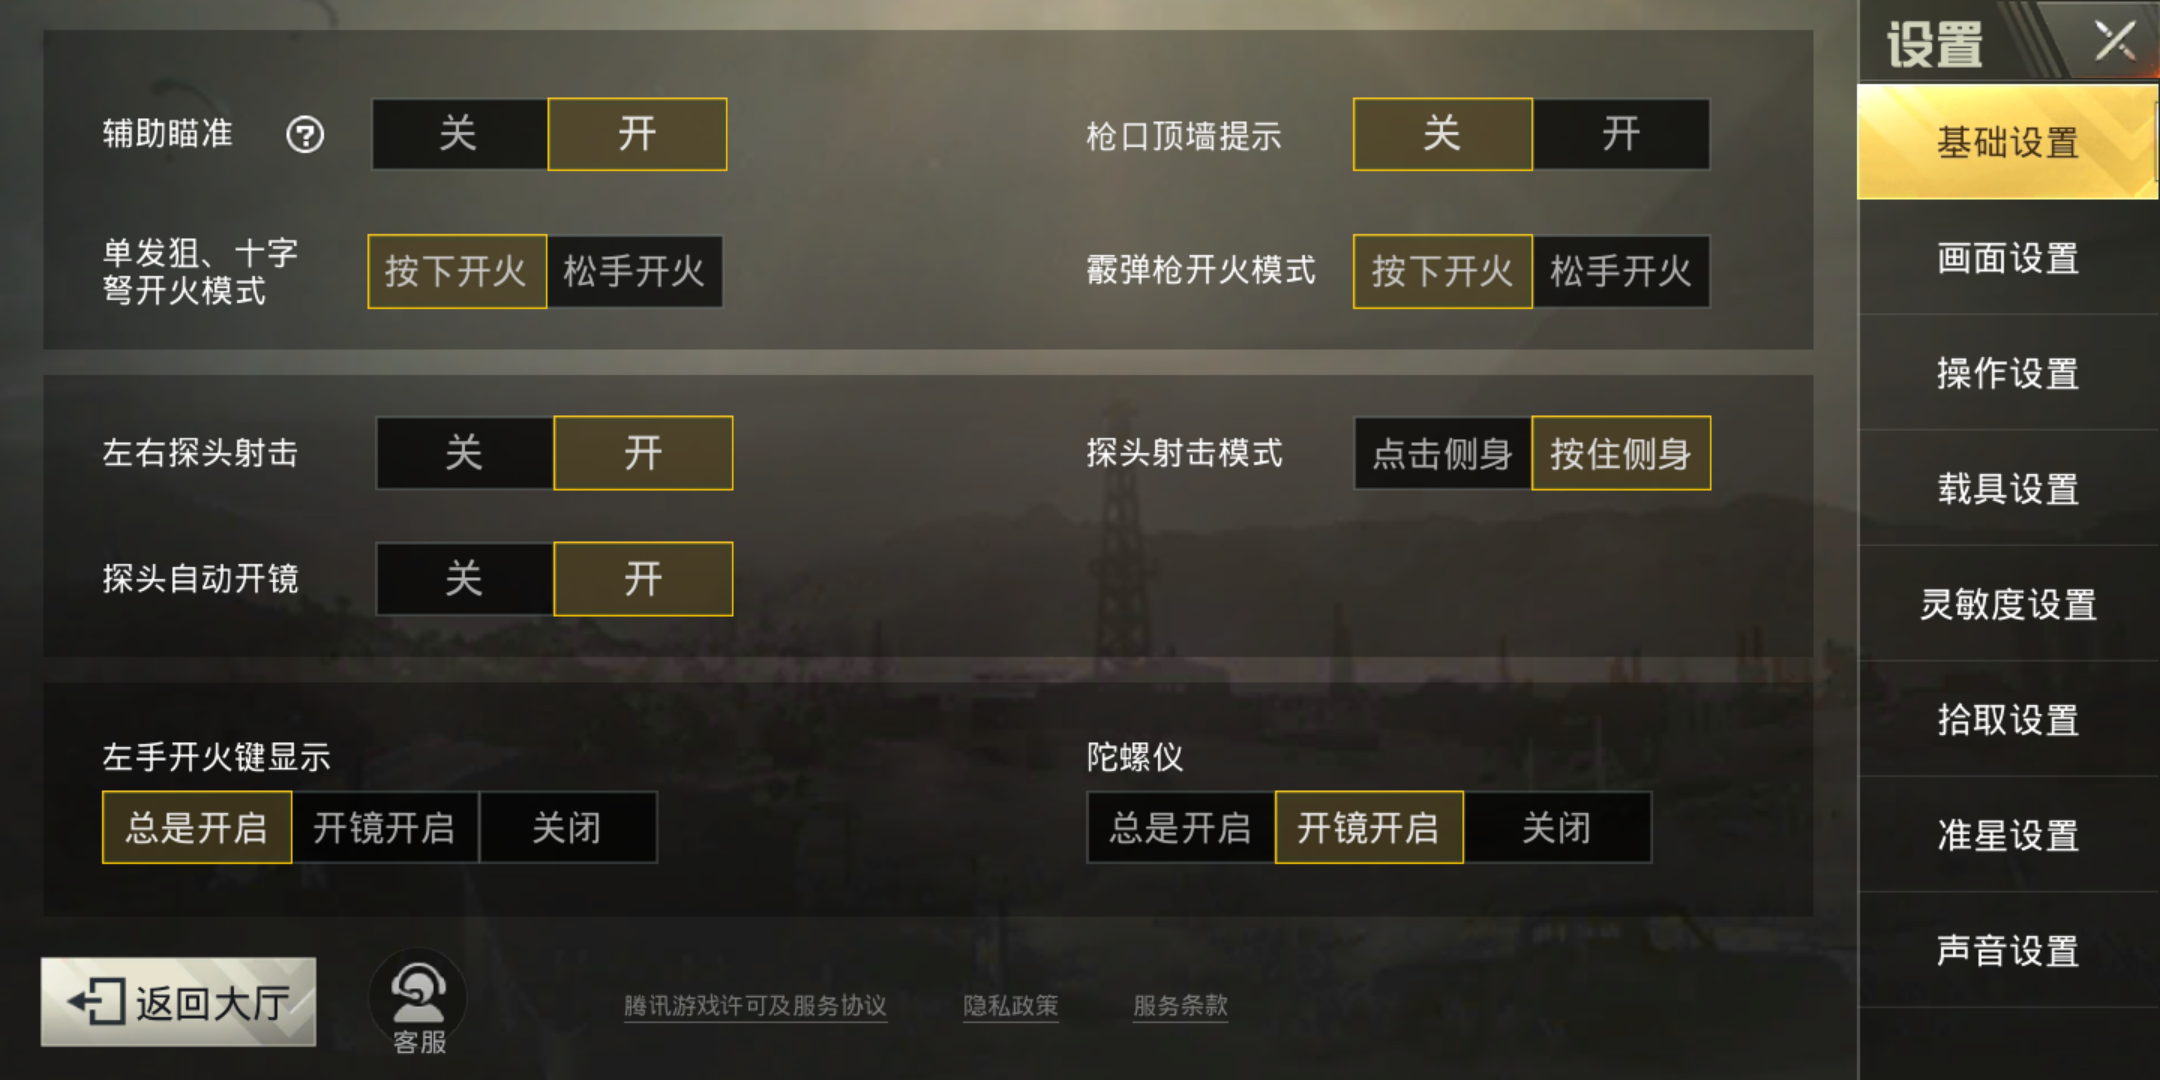 Screenshot_2018-07-10-15-58-03-211_com.tencent.tm.png